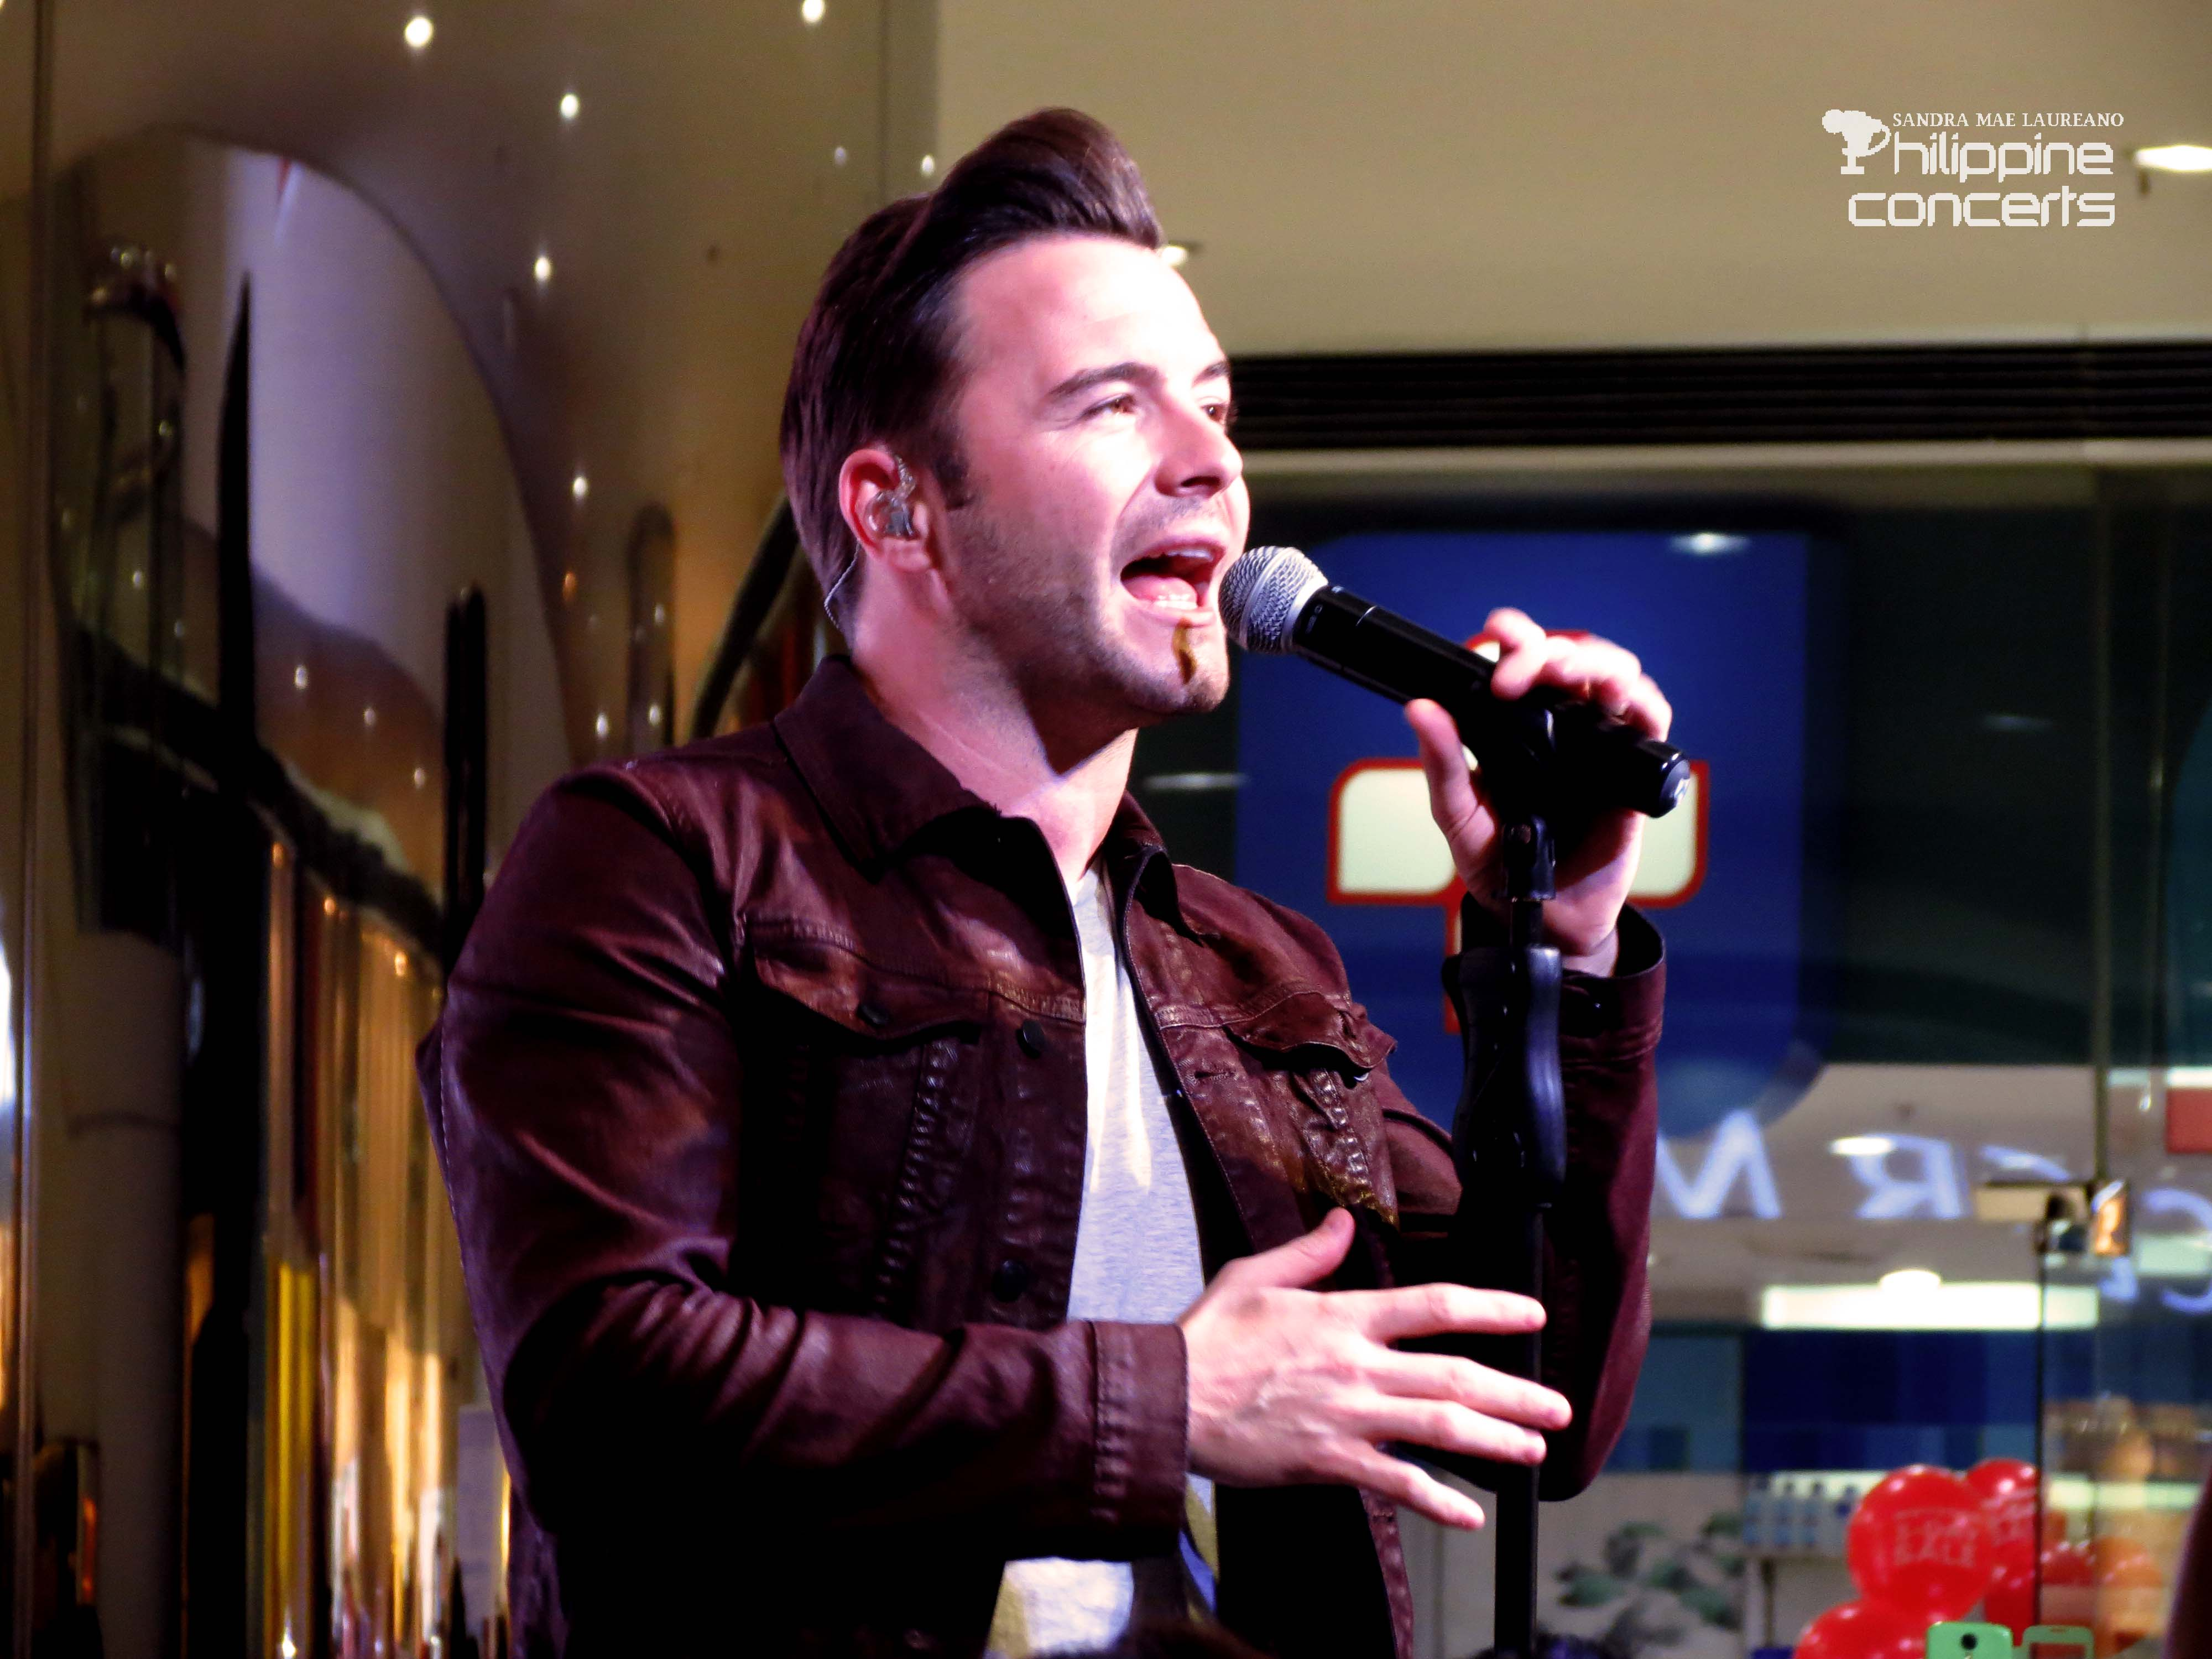 Shane Filan Serenades Manila for the Fifth Time